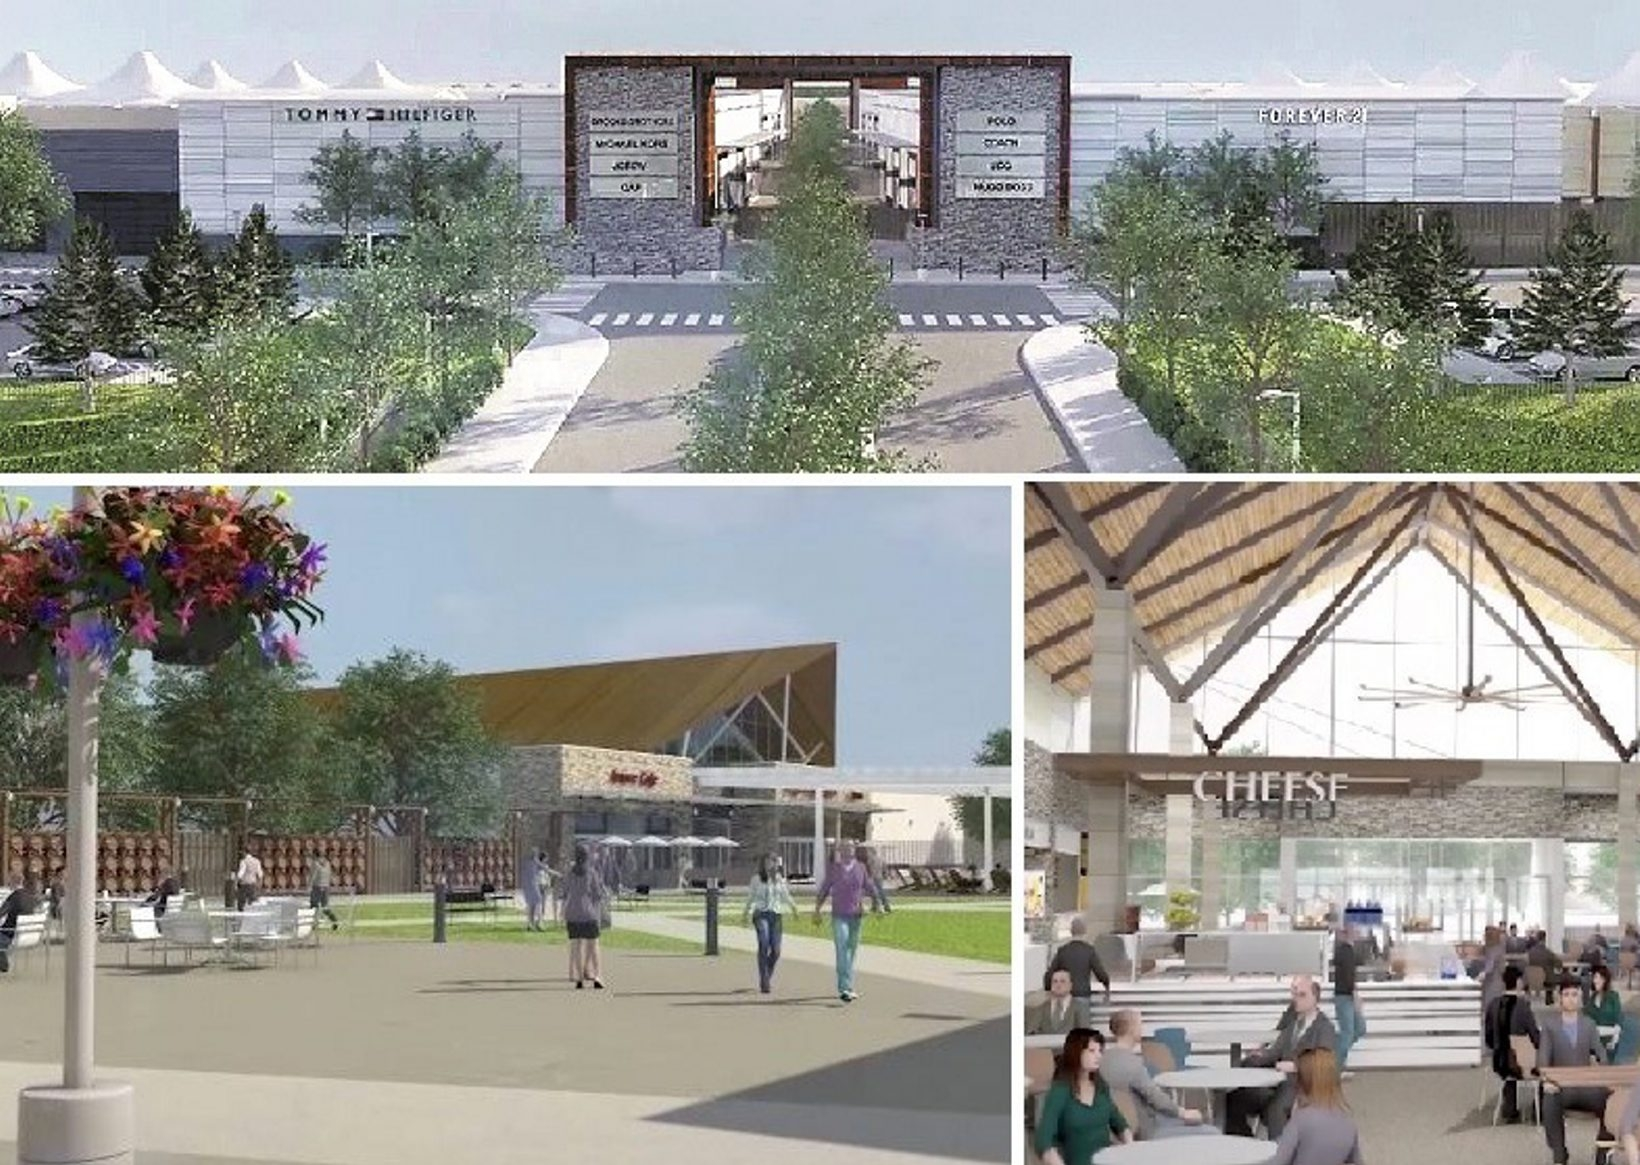 Outlet Collection at Niagara will have open-air design, outdoor common areas and partly covered walkways.